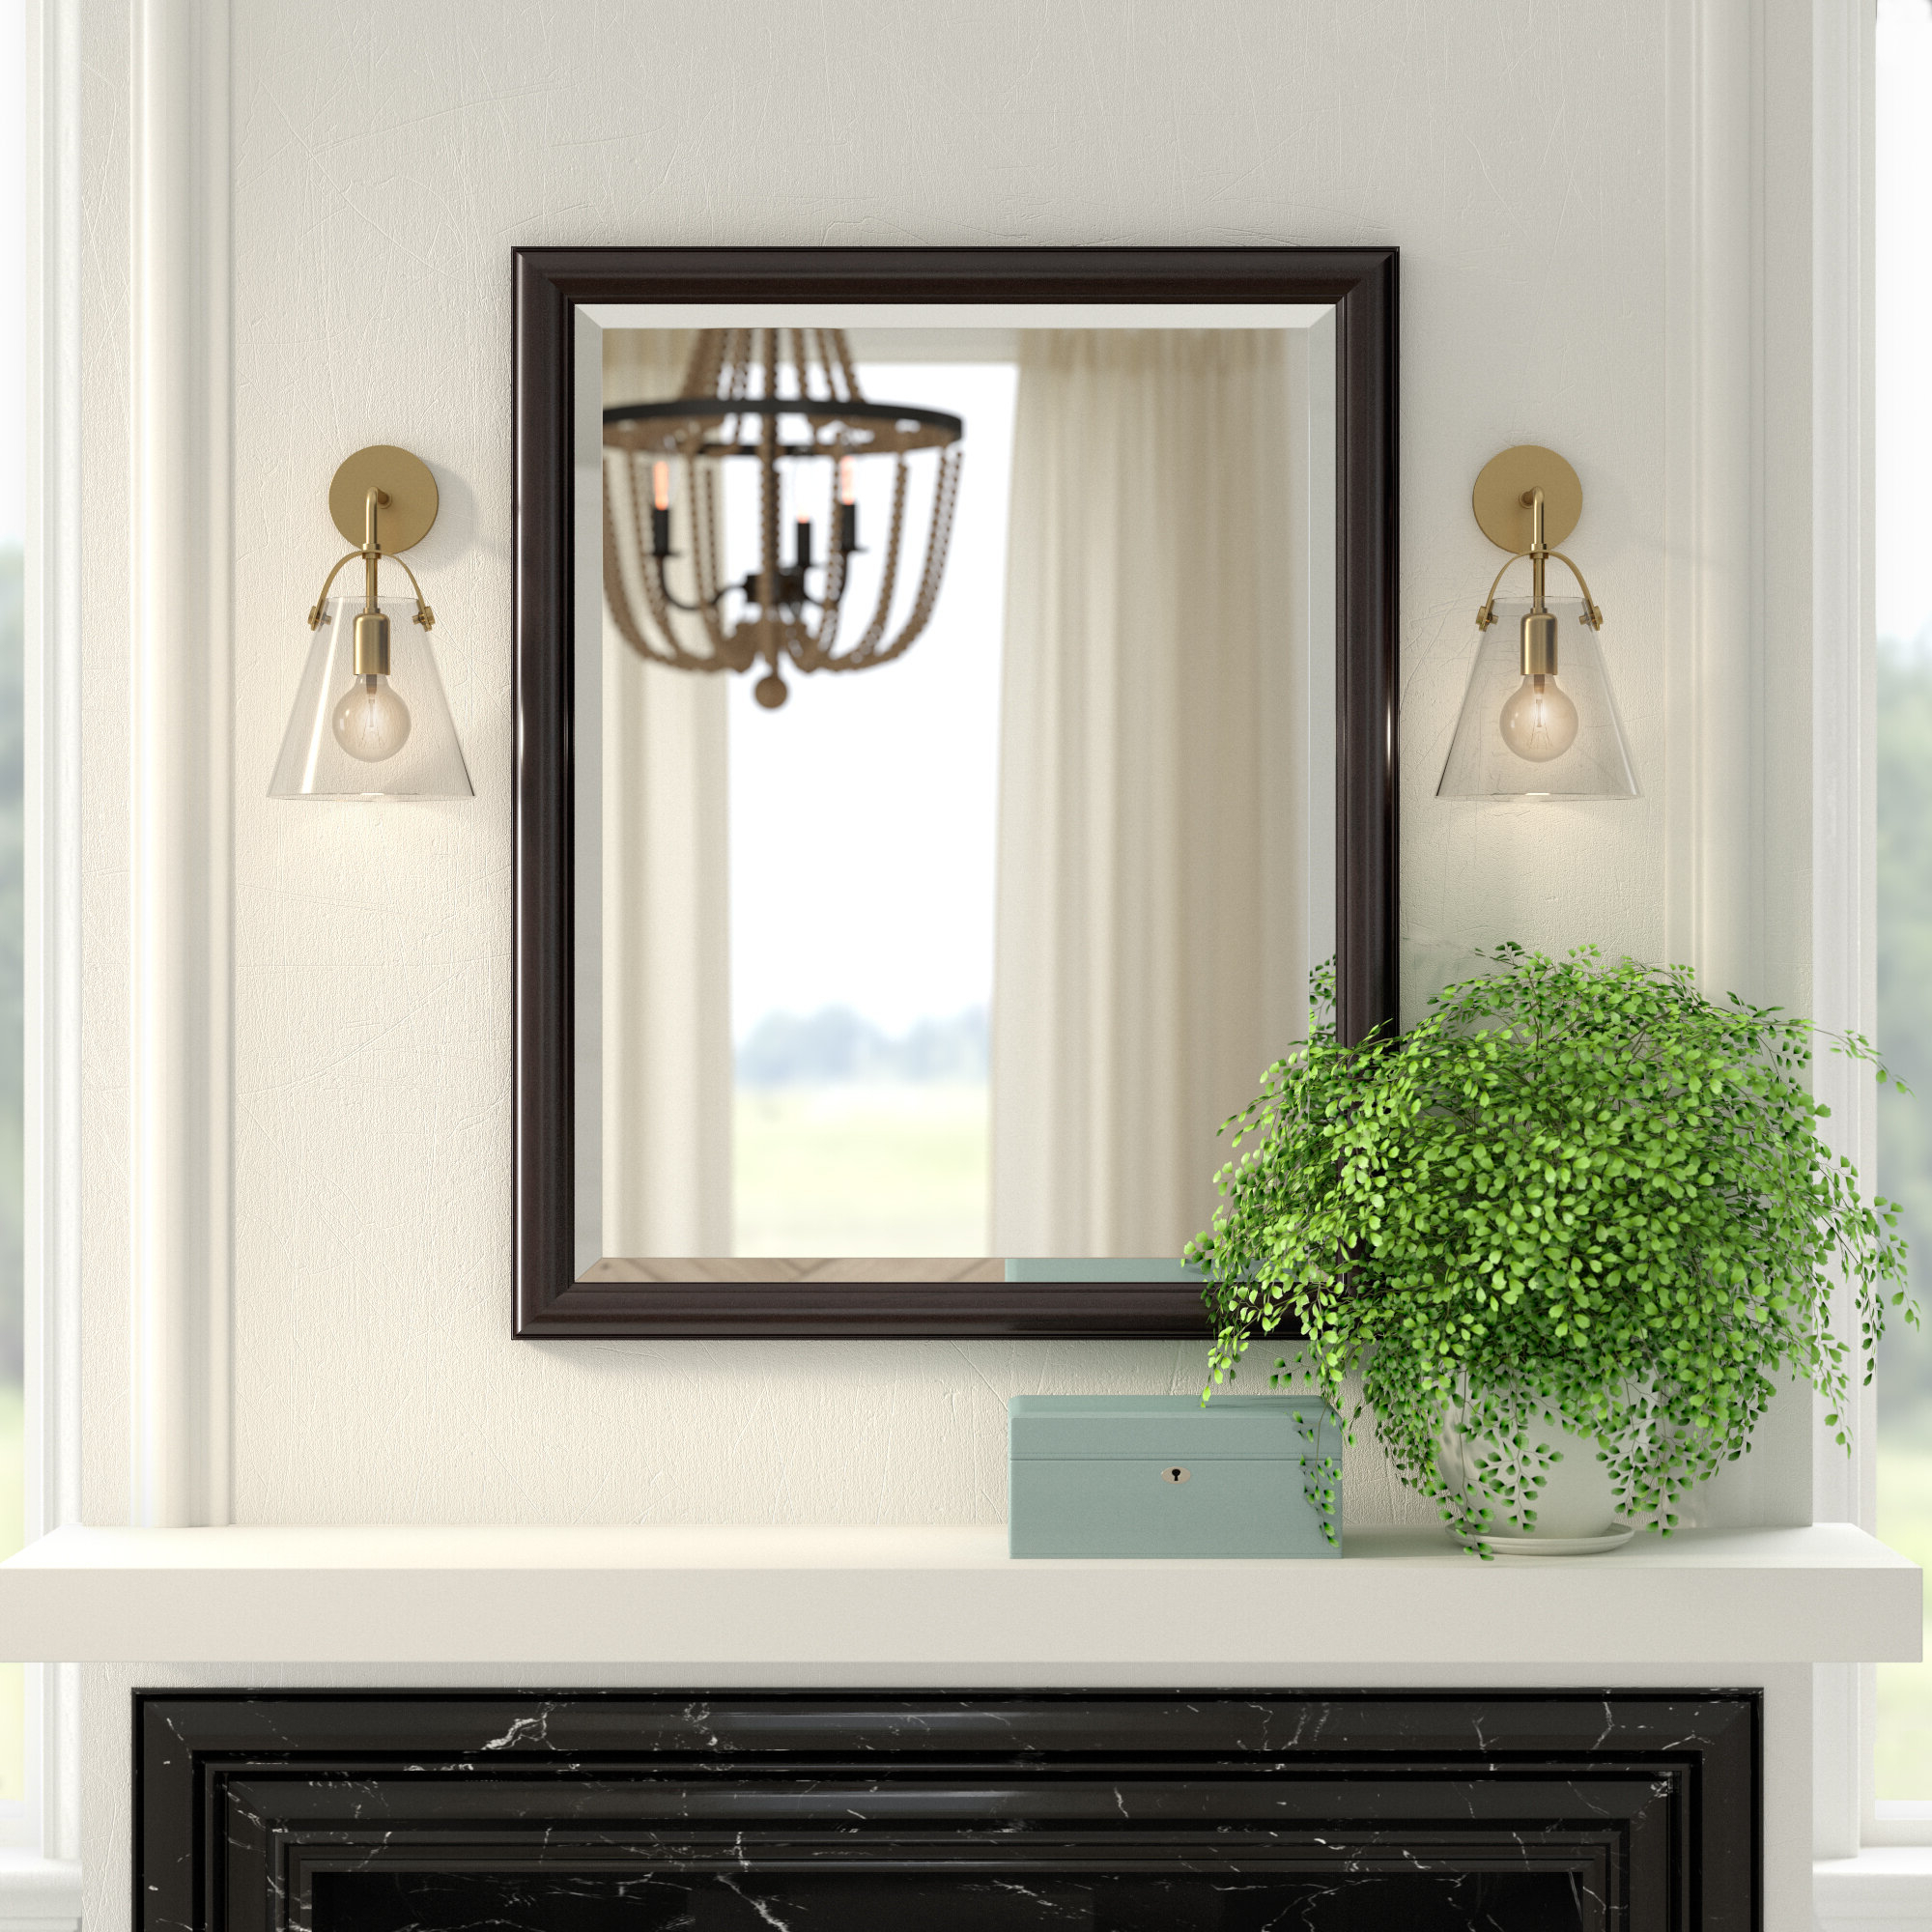 Preferred Framed Beveled Wall Mirror Within Dedrick Decorative Framed Modern And Contemporary Wall Mirrors (View 18 of 20)